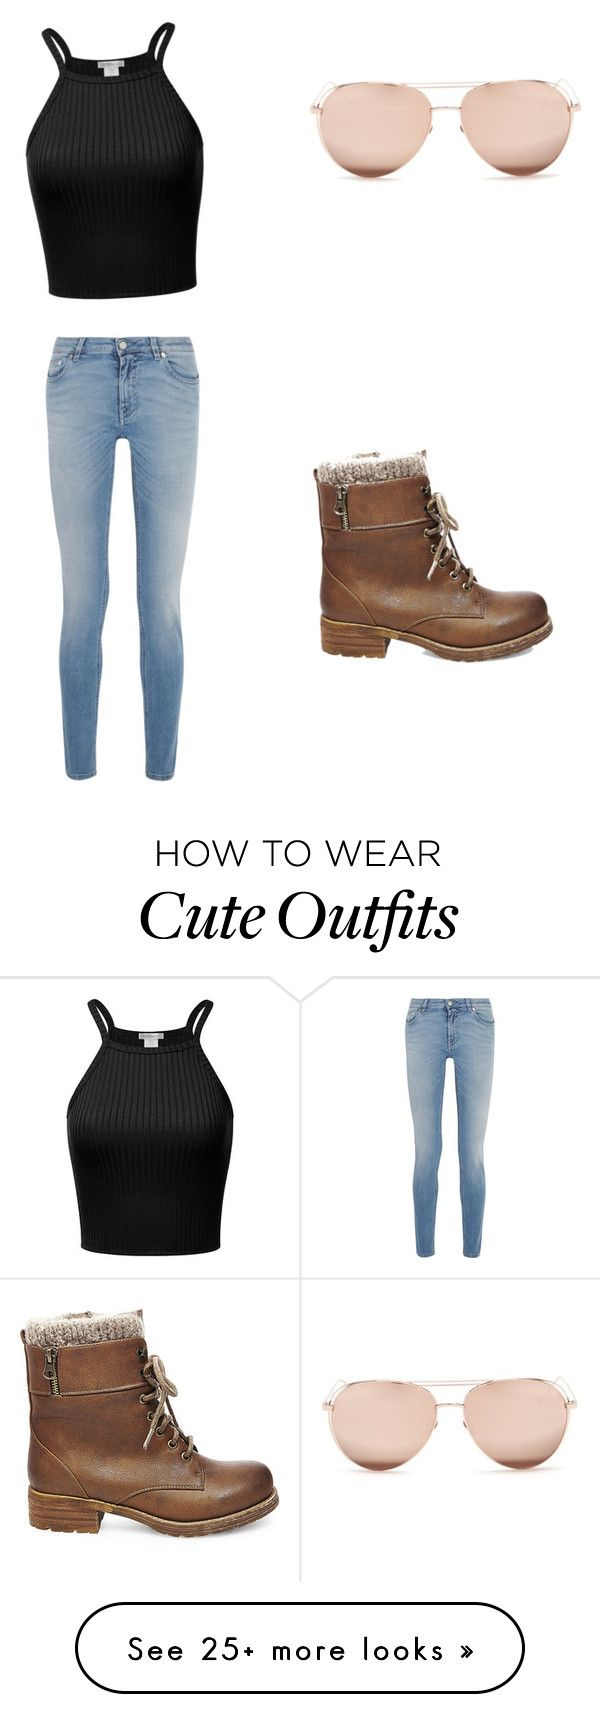 """""""Cute outfit look"""" by bookerchilynnmahond on Polyvore featuring Steve Madden, Linda Farrow and Givenchy"""